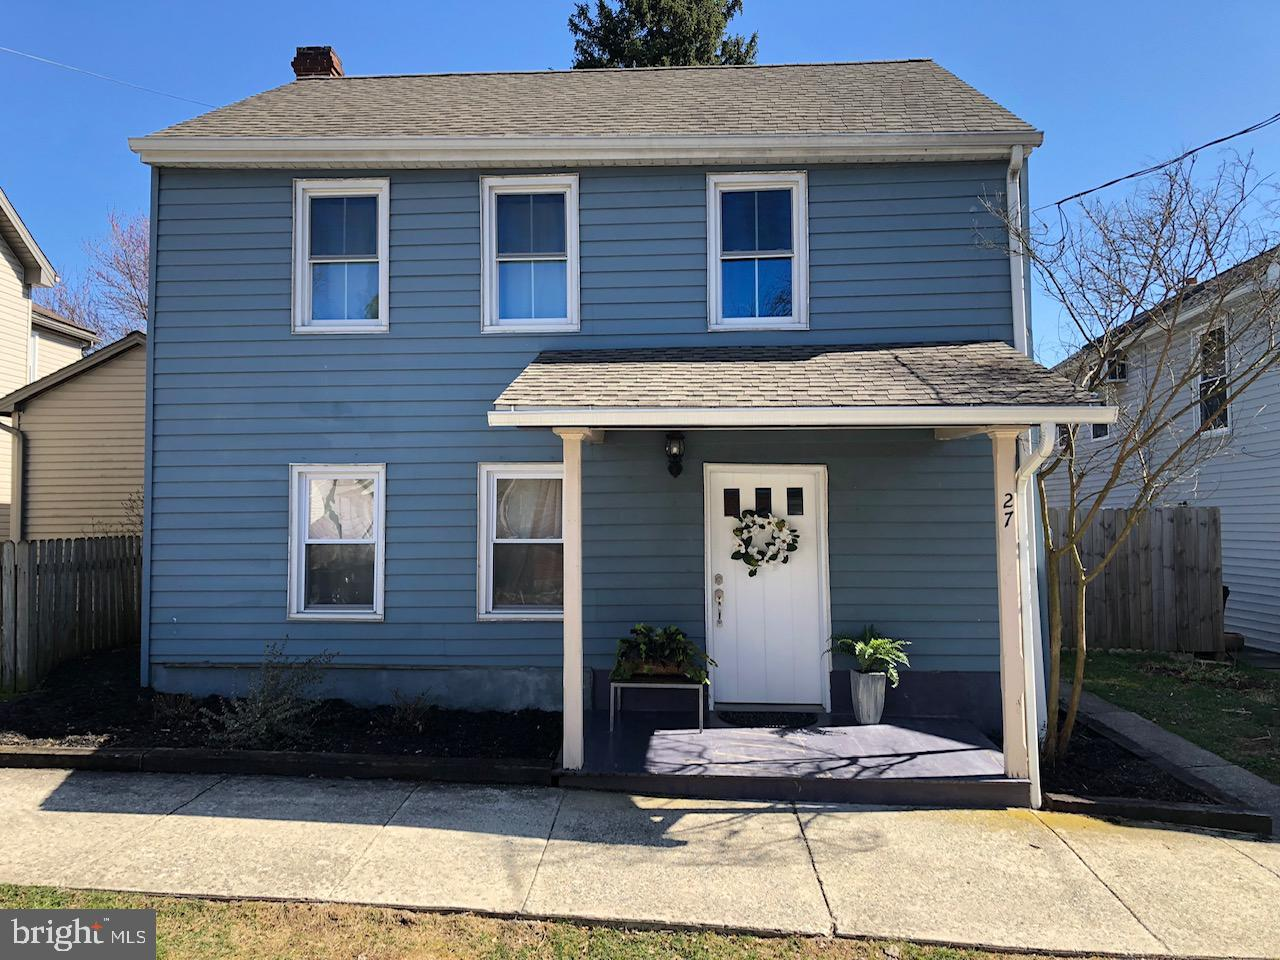 27 E HIGH STREET, MAYTOWN, PA 17550